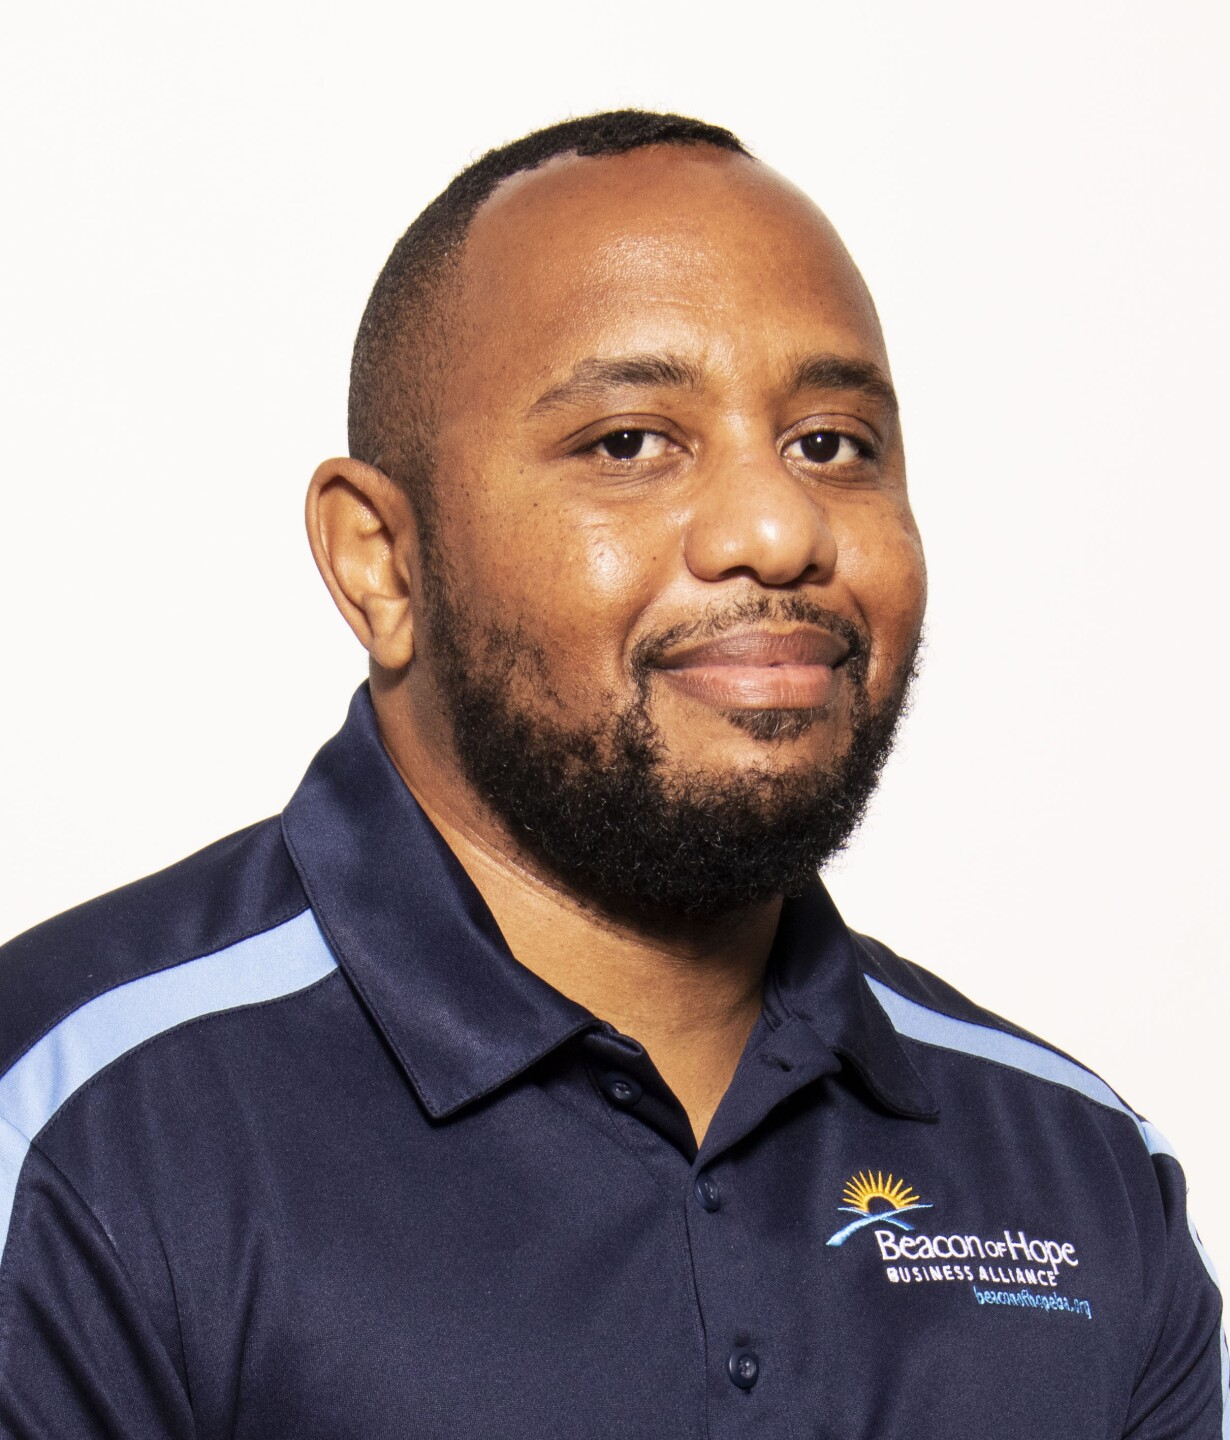 Rayshun Holt is program director for the Beacon of Hope Business Alliance at Cincinnati Works.